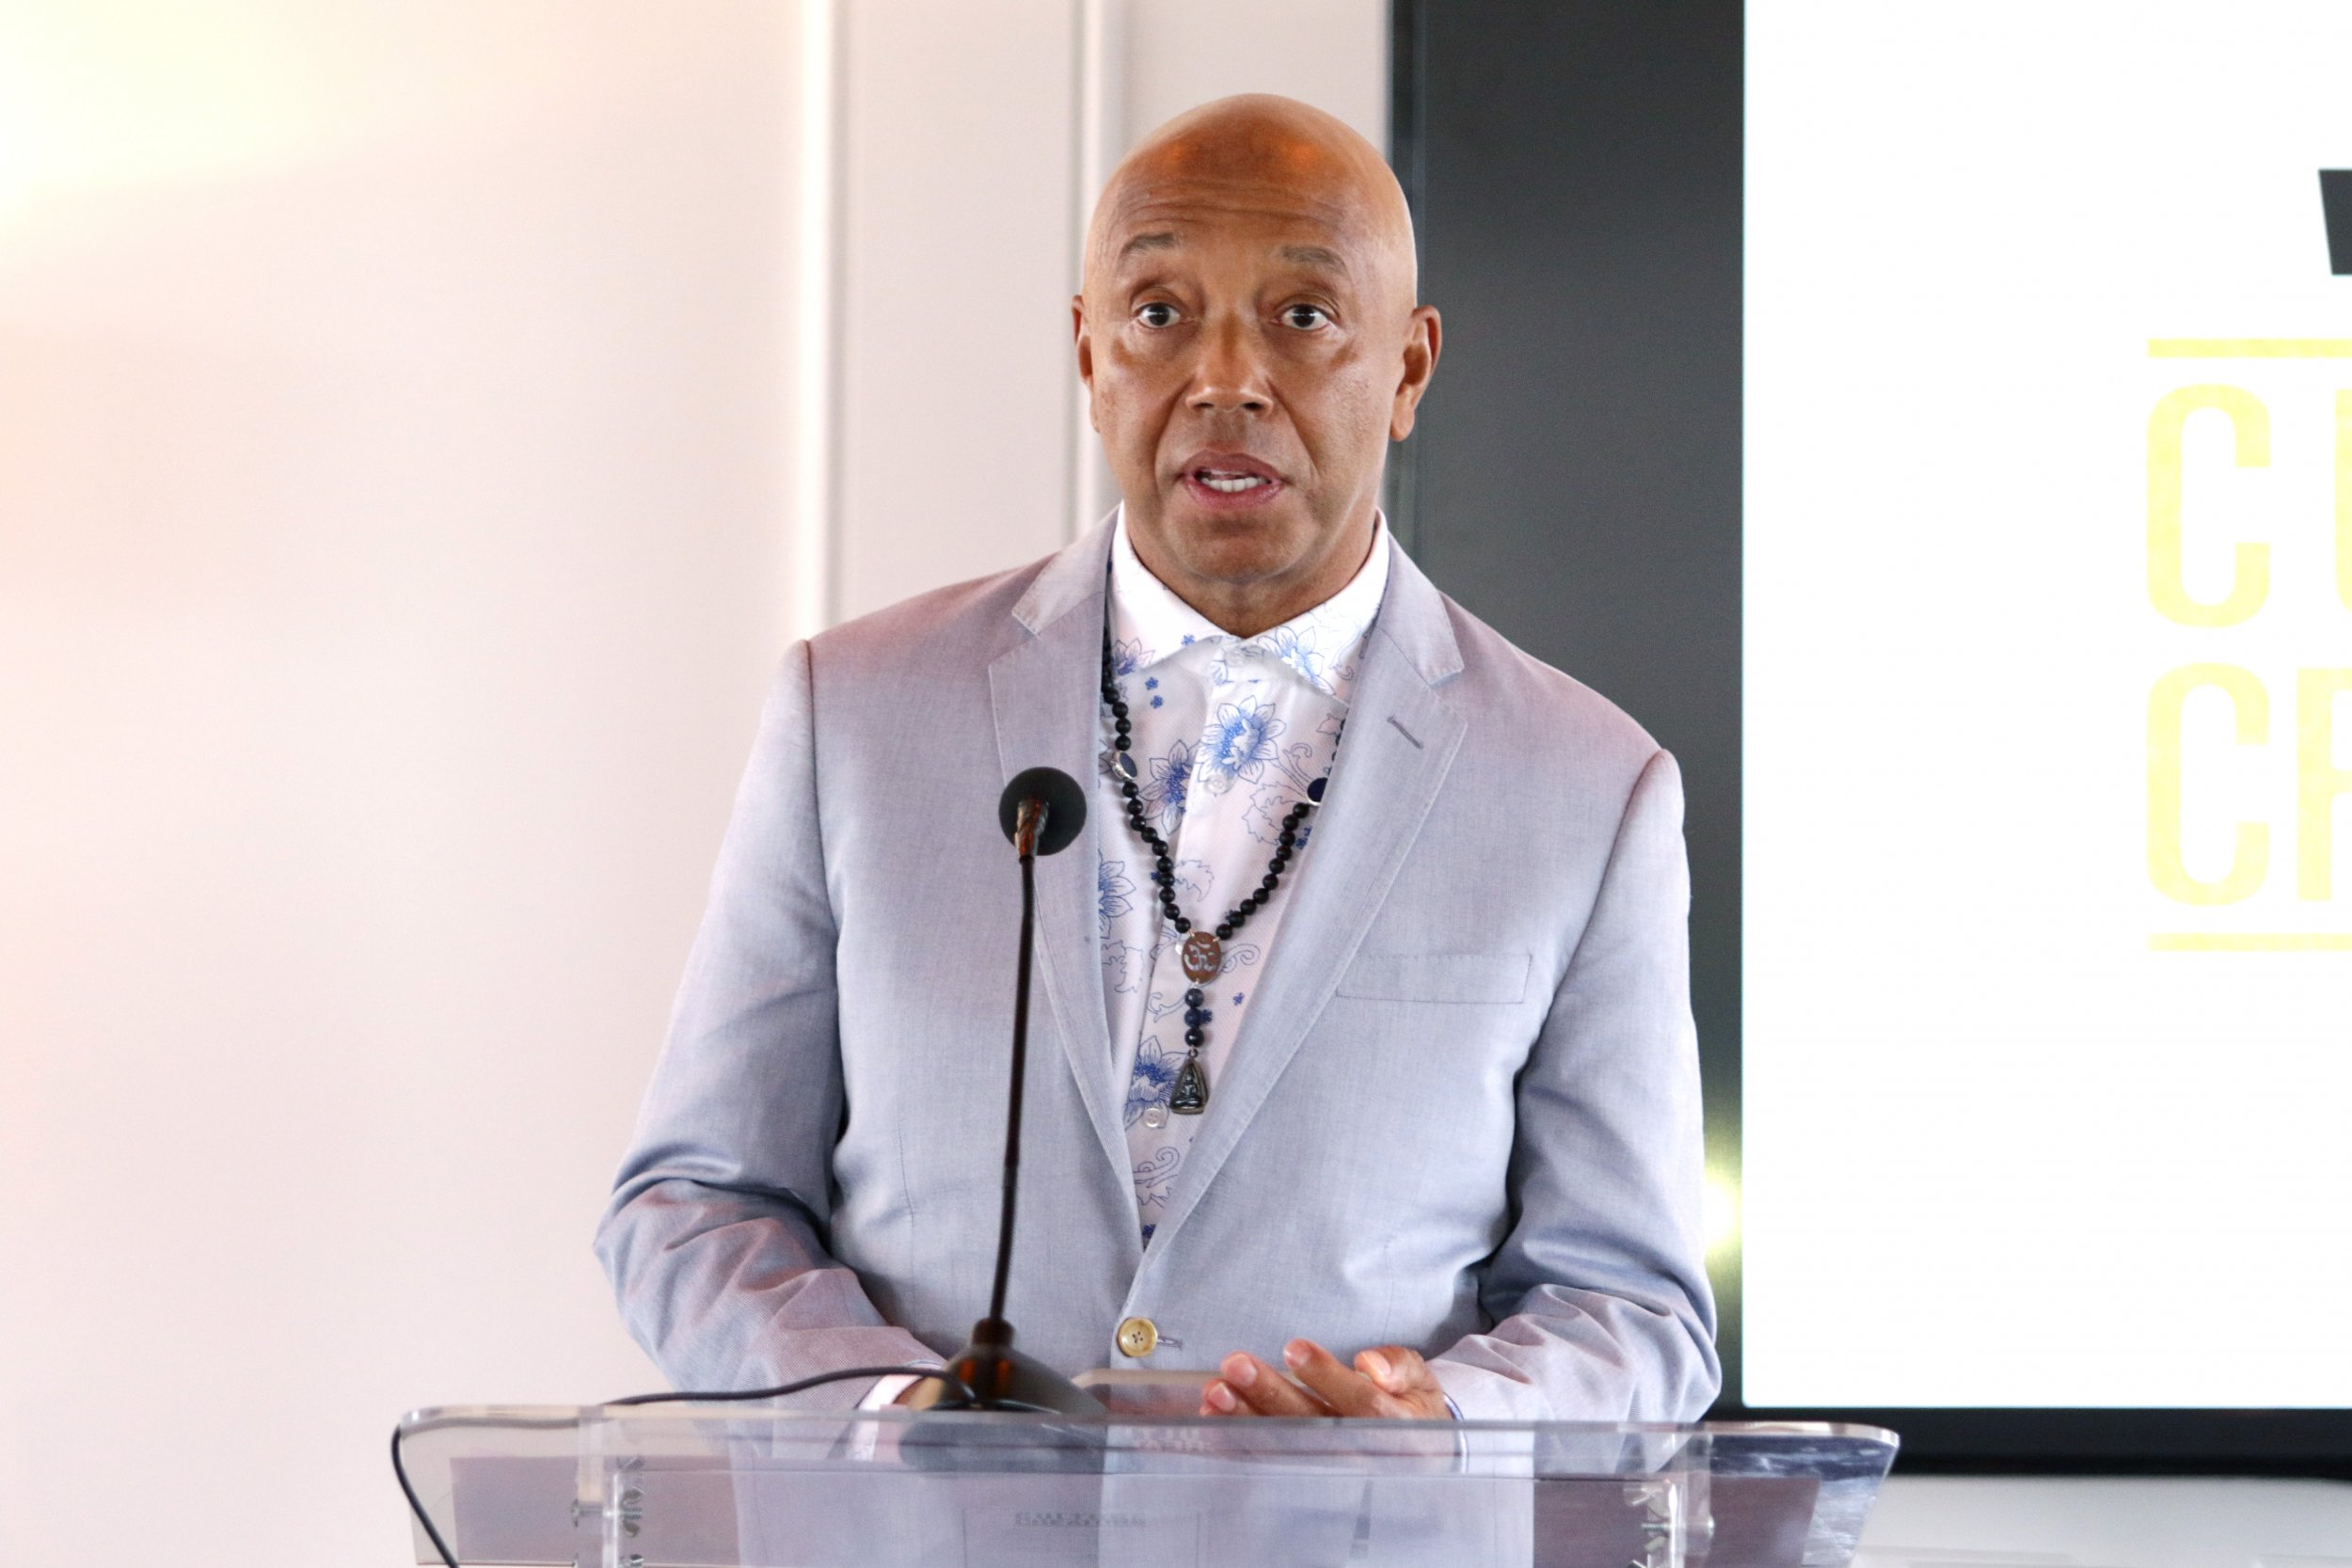 Russell Simmons steps down from his businesses